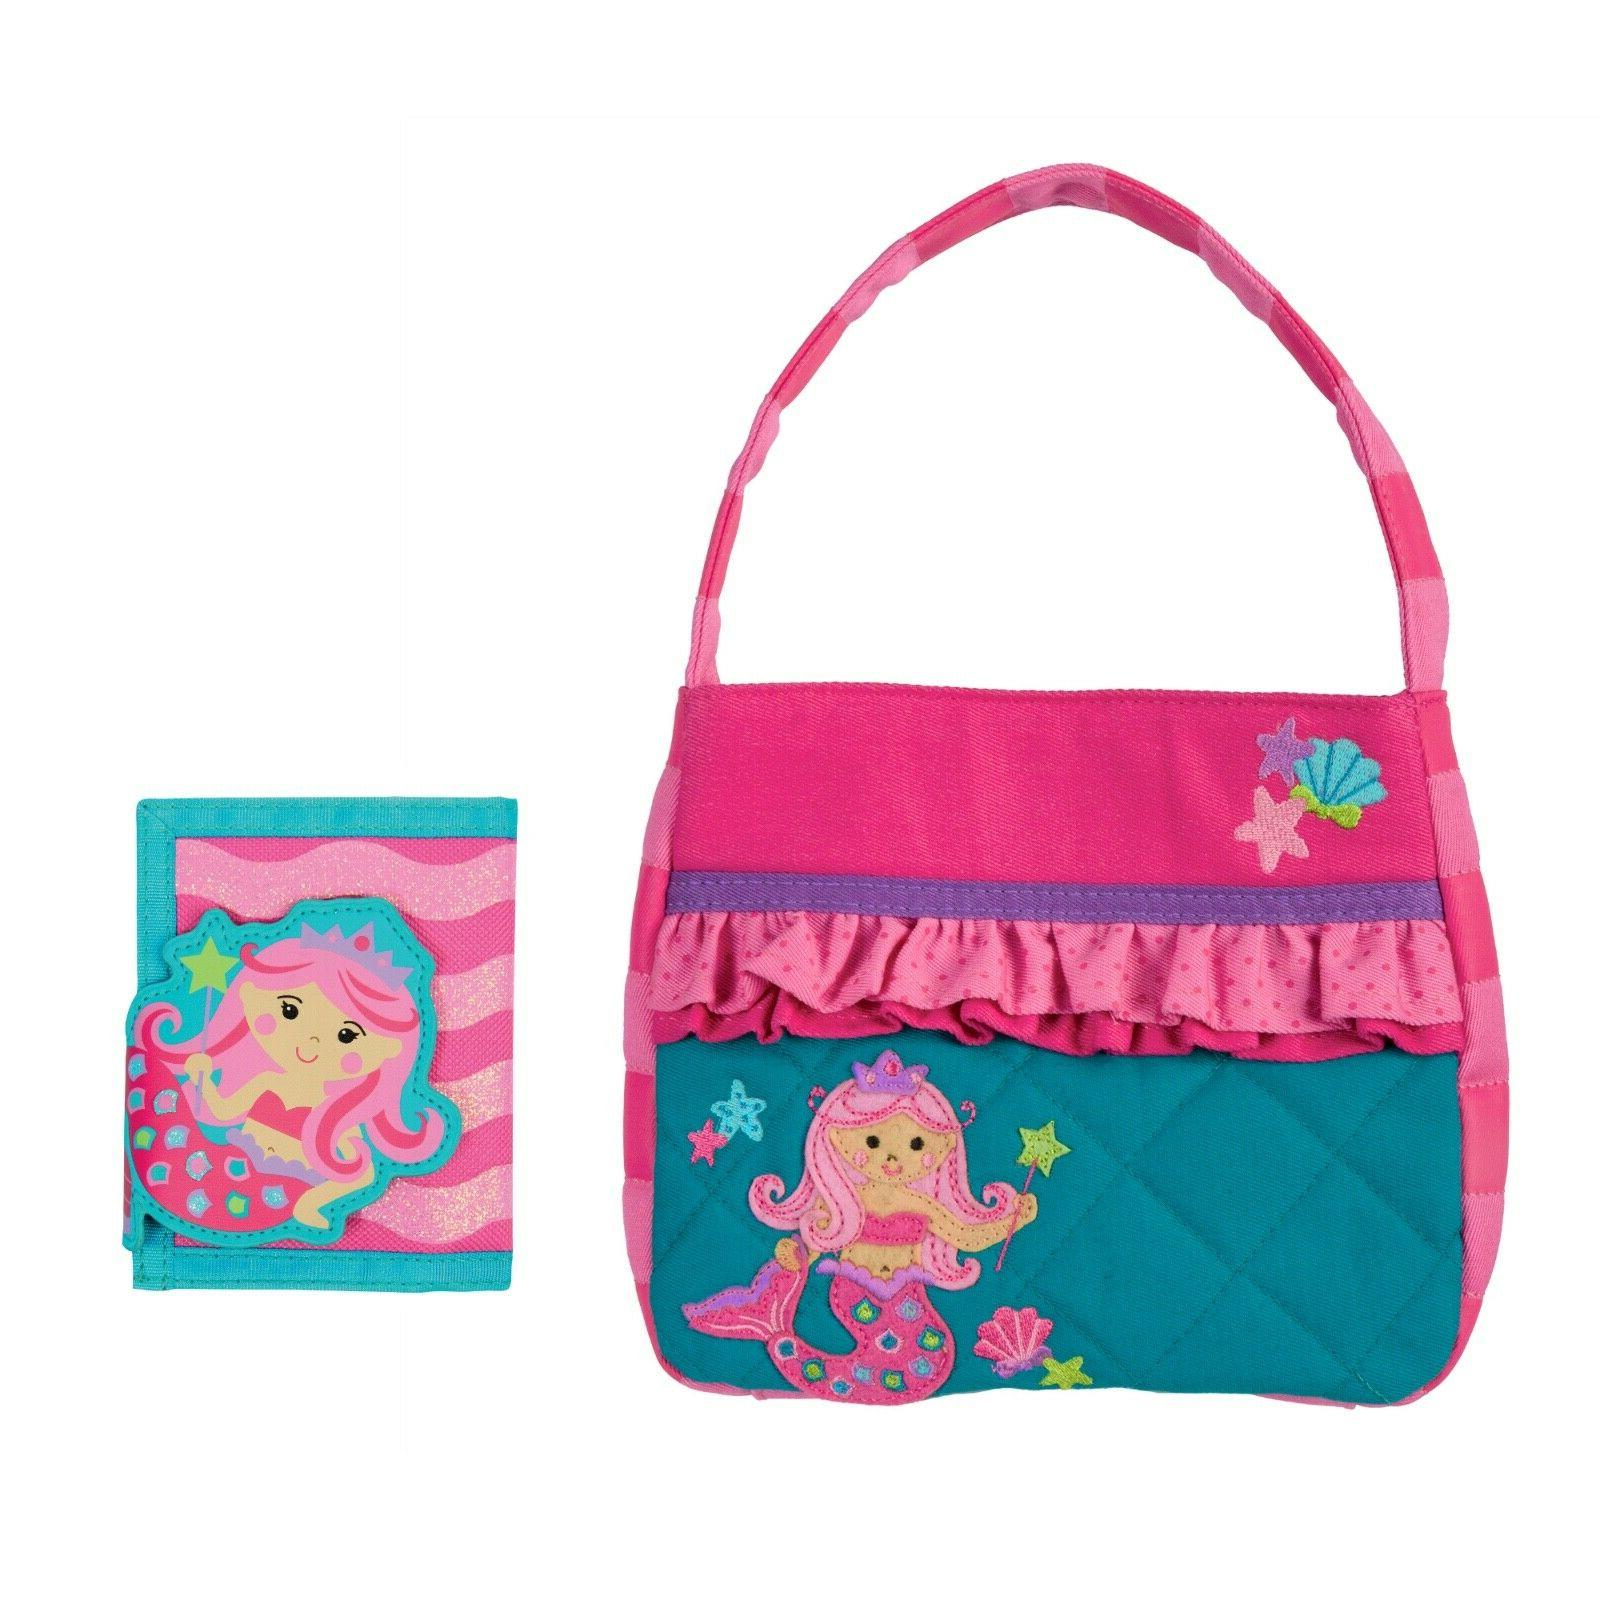 Quilted Mermaid Purse and Wallet for Girls - Cute Kids Handb